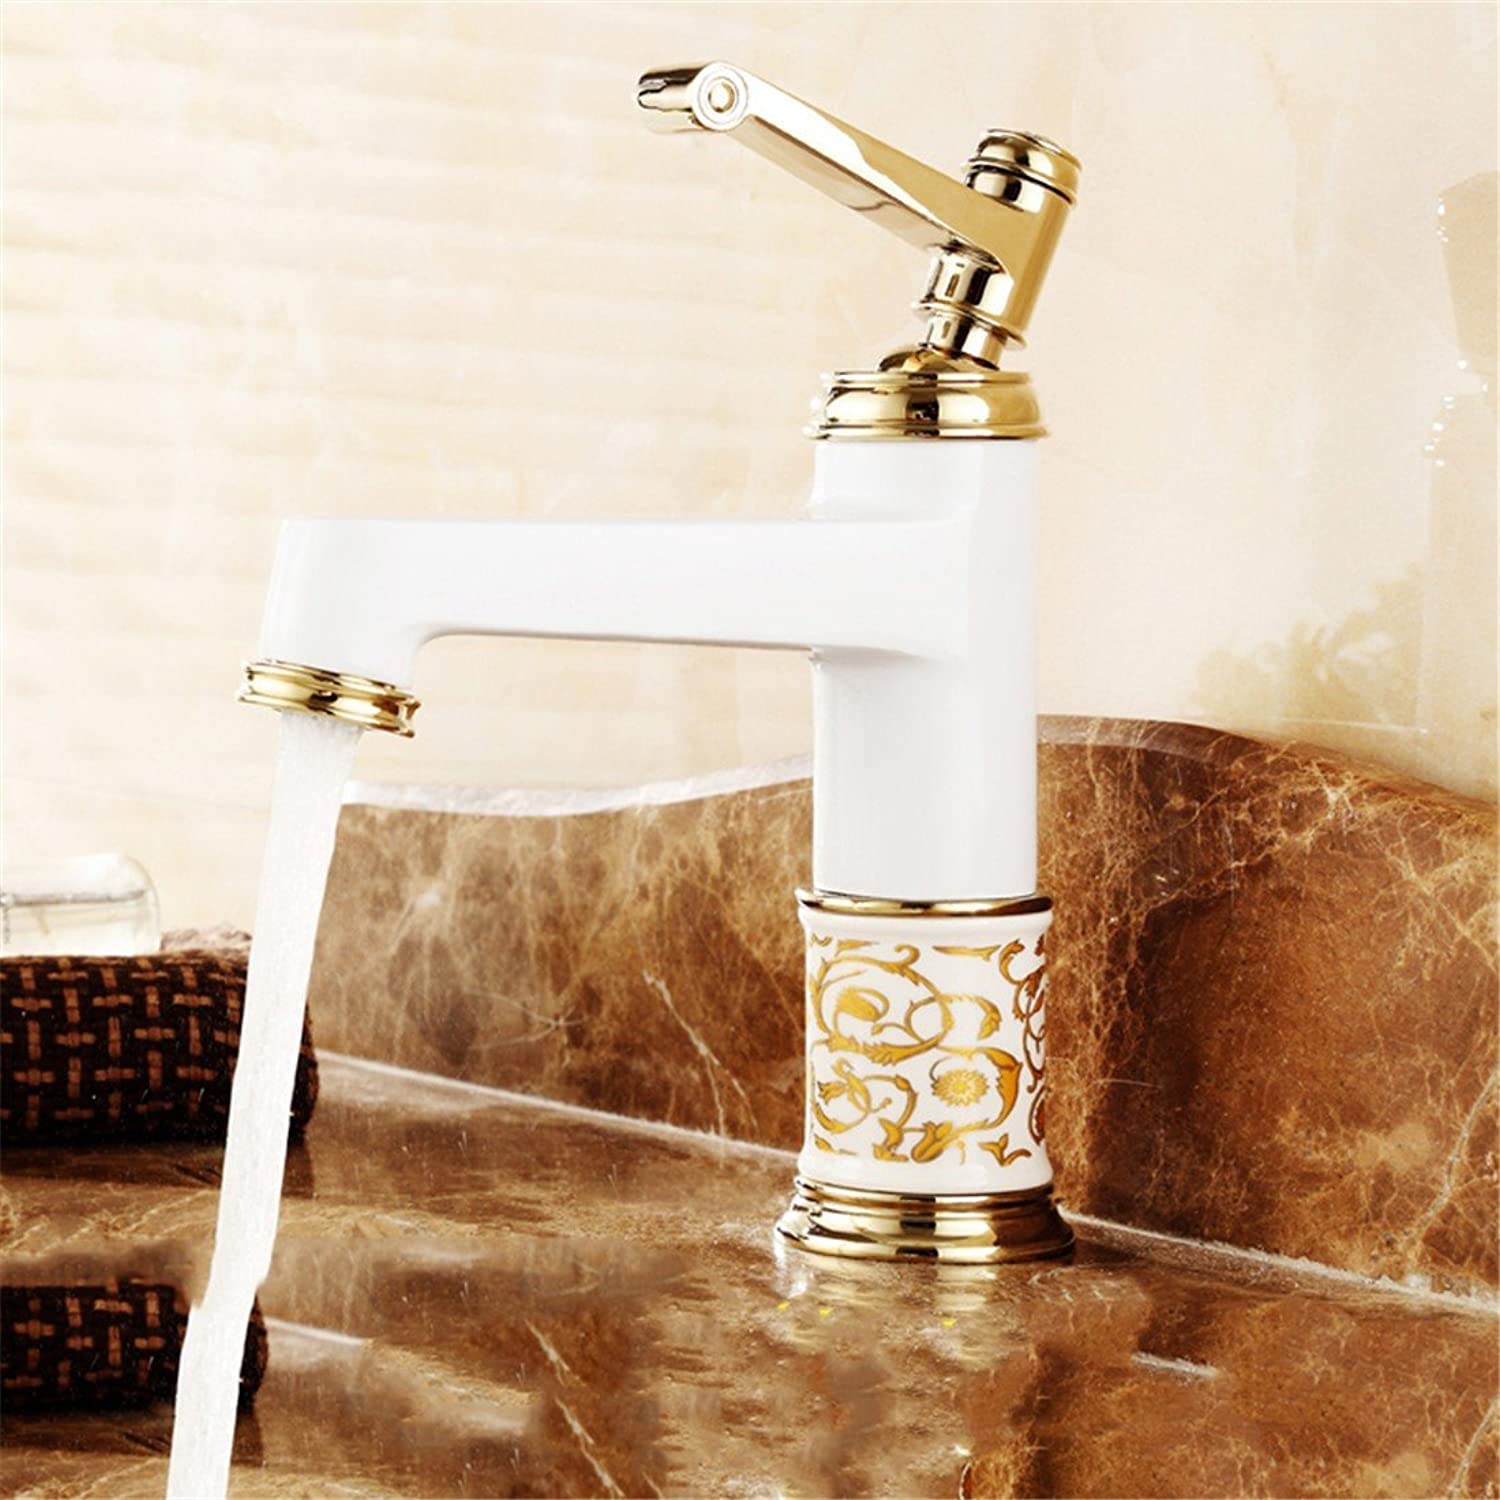 Hlluya Professional Sink Mixer Tap The golden faucet hot and cold taps full copper bathroom plus high bluee-tiled table top basin gold plated antique fittings, paint - gold taps the braided hose